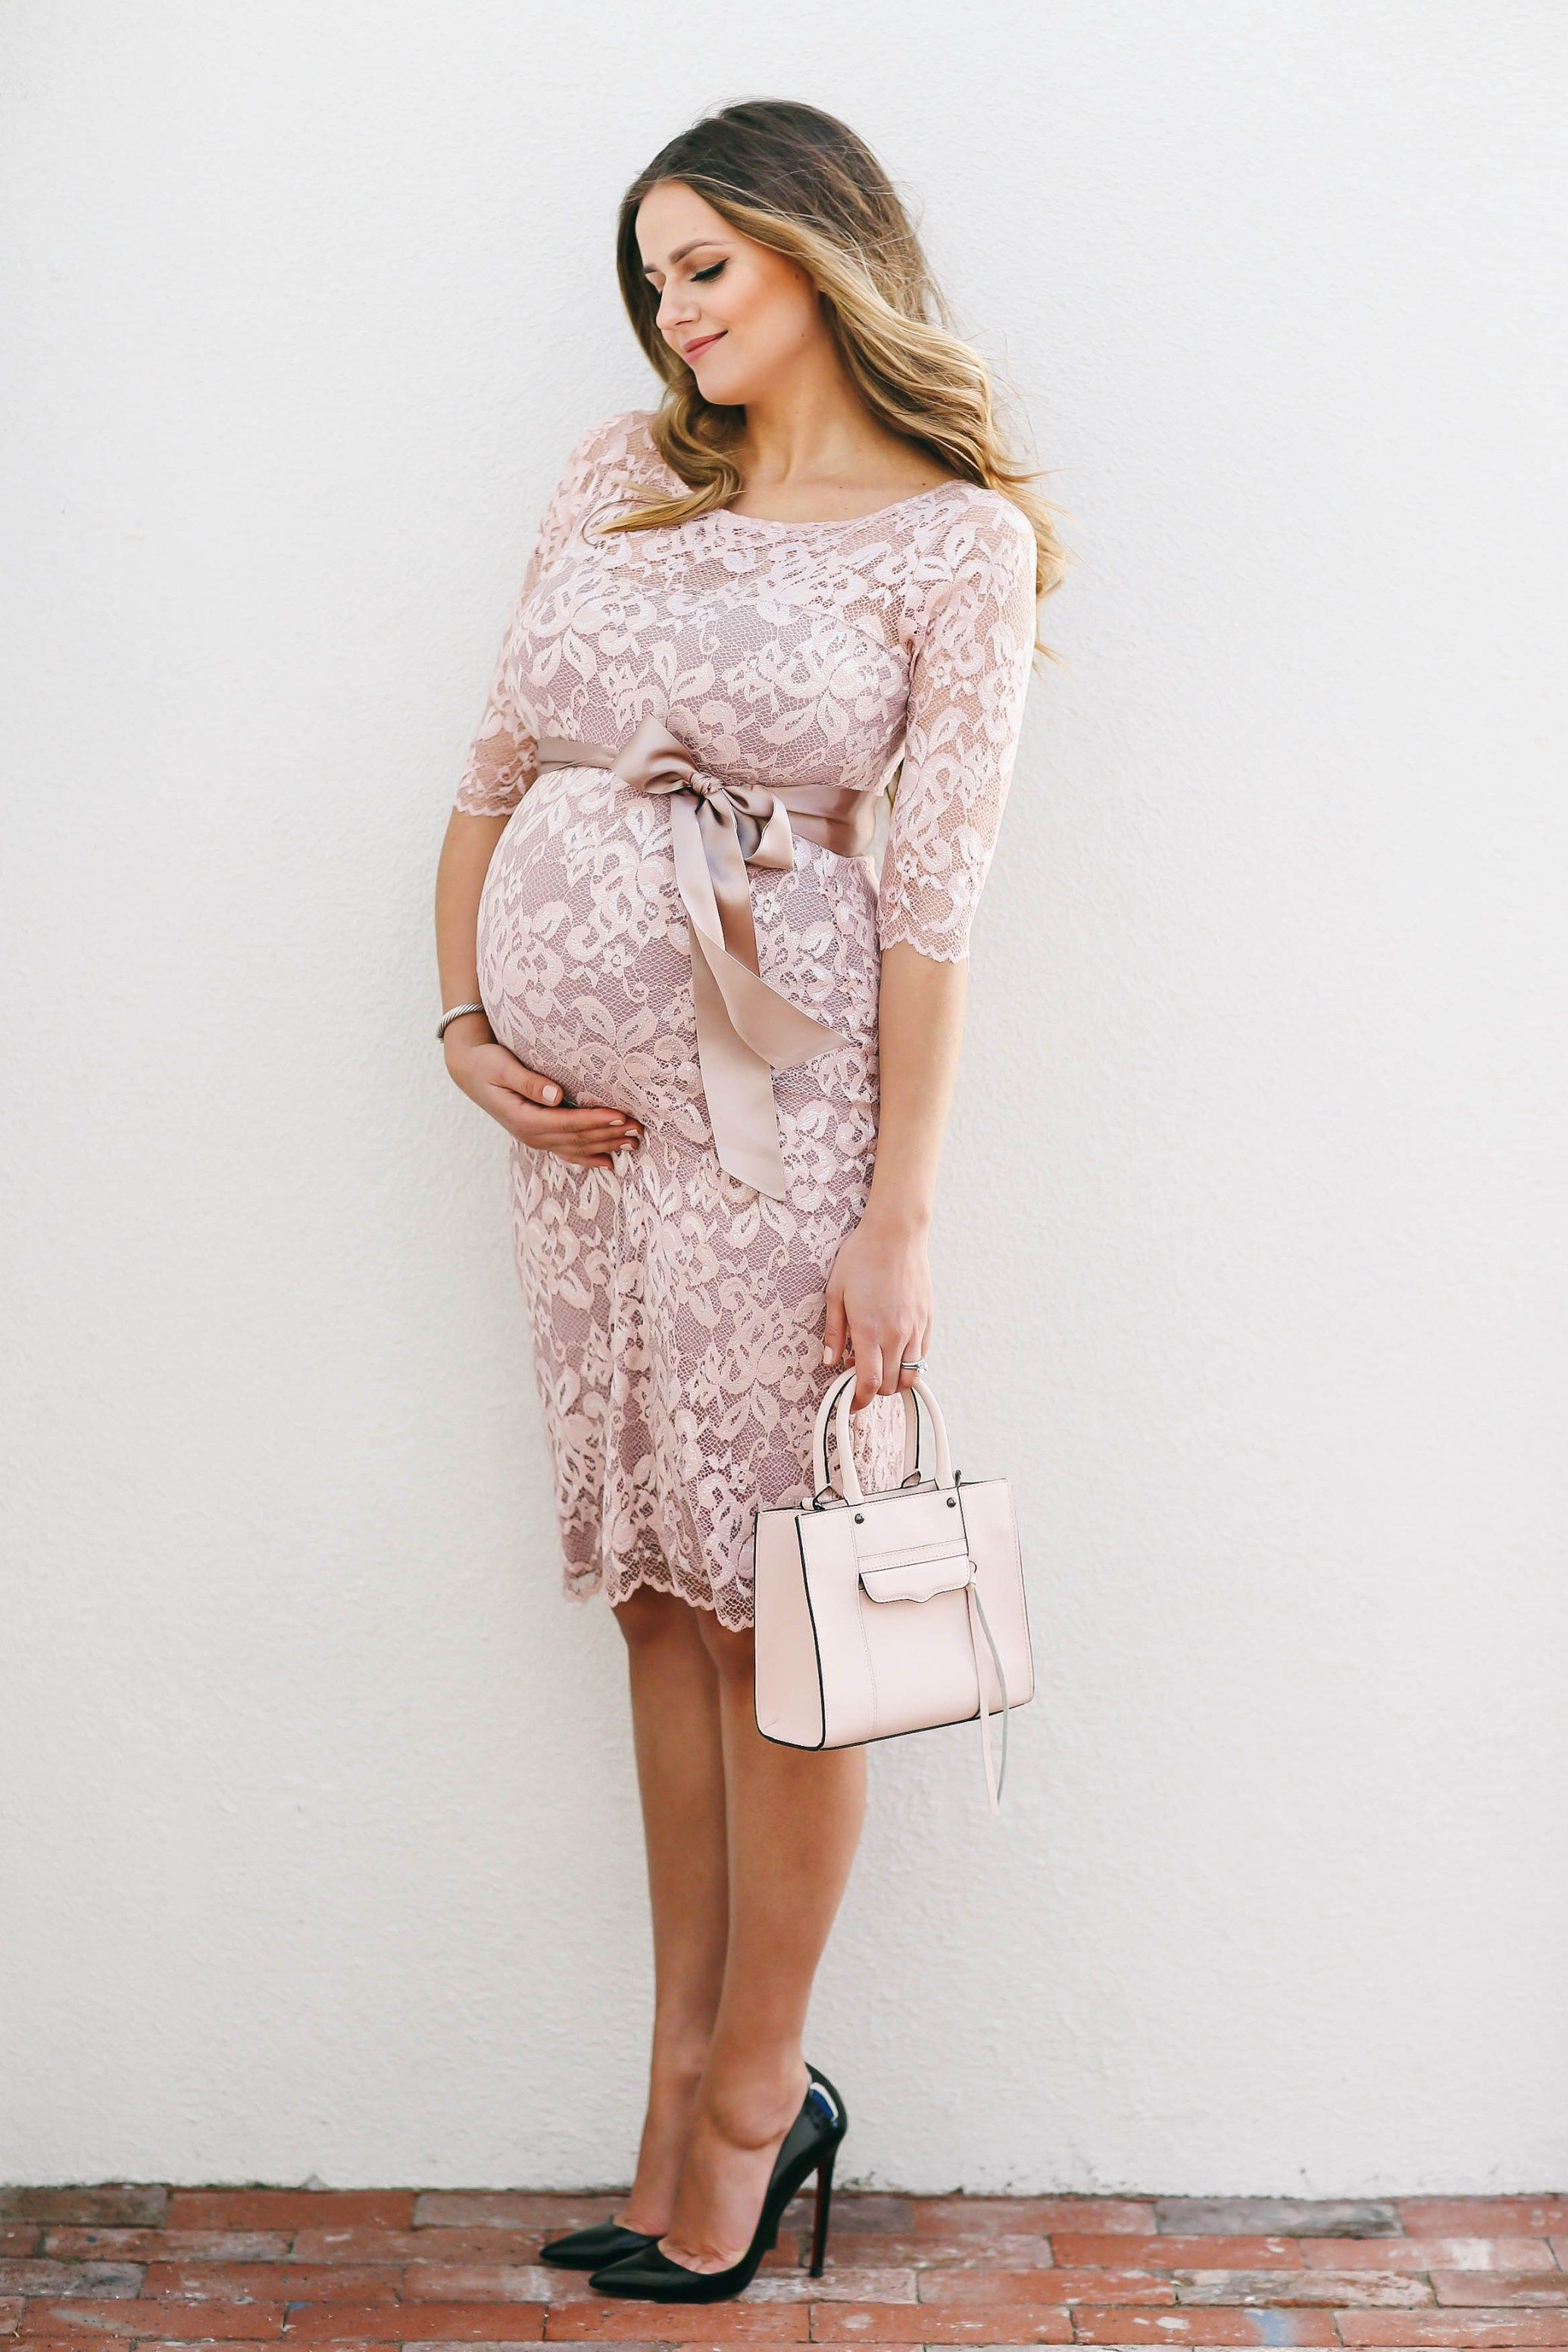 Bumpstyle blush pink lace maternity dress blush pink bumpstyle blush pink lace maternity dress ombrellifo Gallery